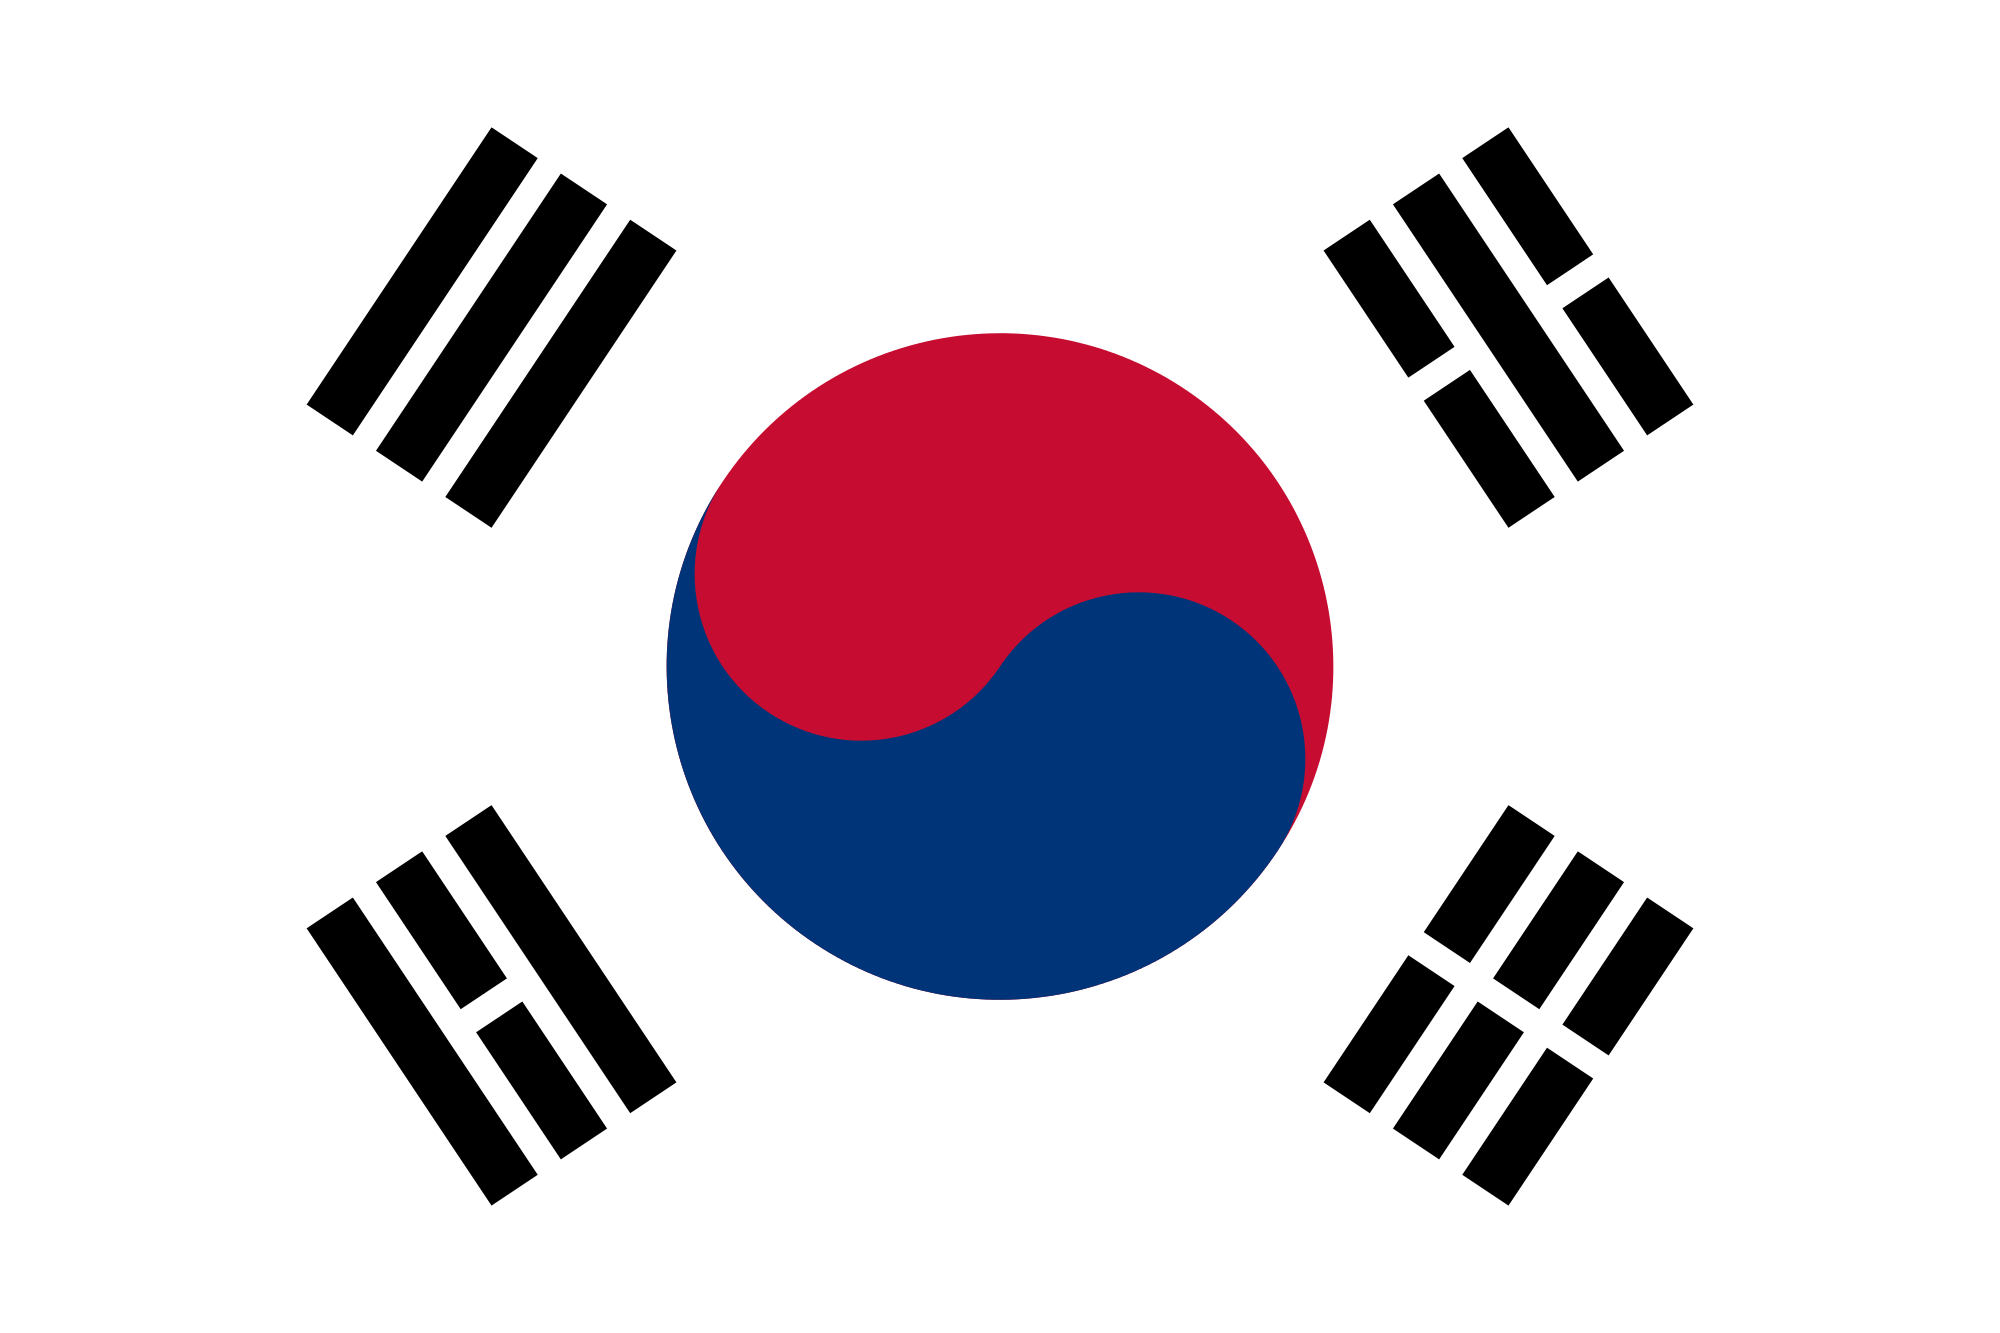 Korea, South in Asia (School): Choo Choo Train English Institute - Private School - South Korea